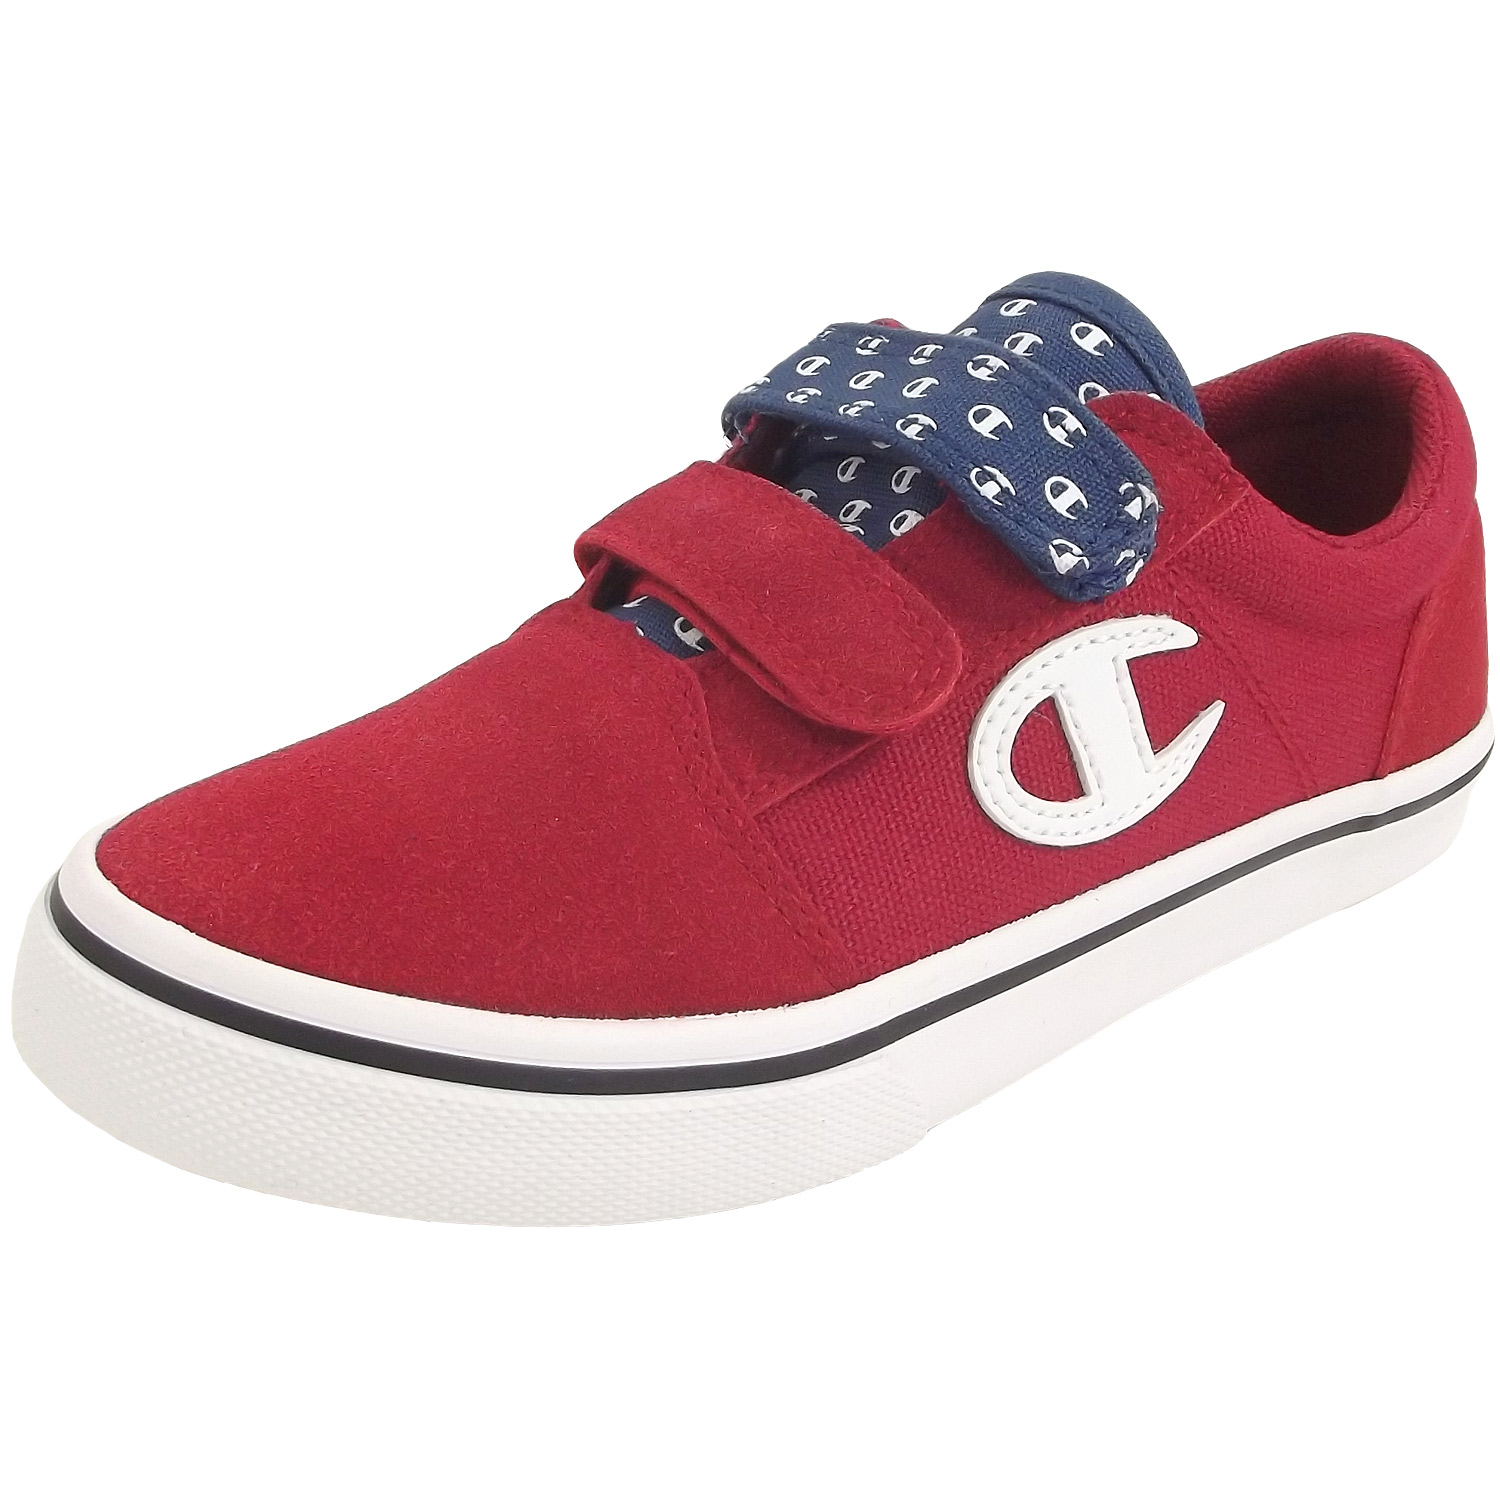 4537b0a82b45 Champion 360 Canvas Child Sneakers red all over